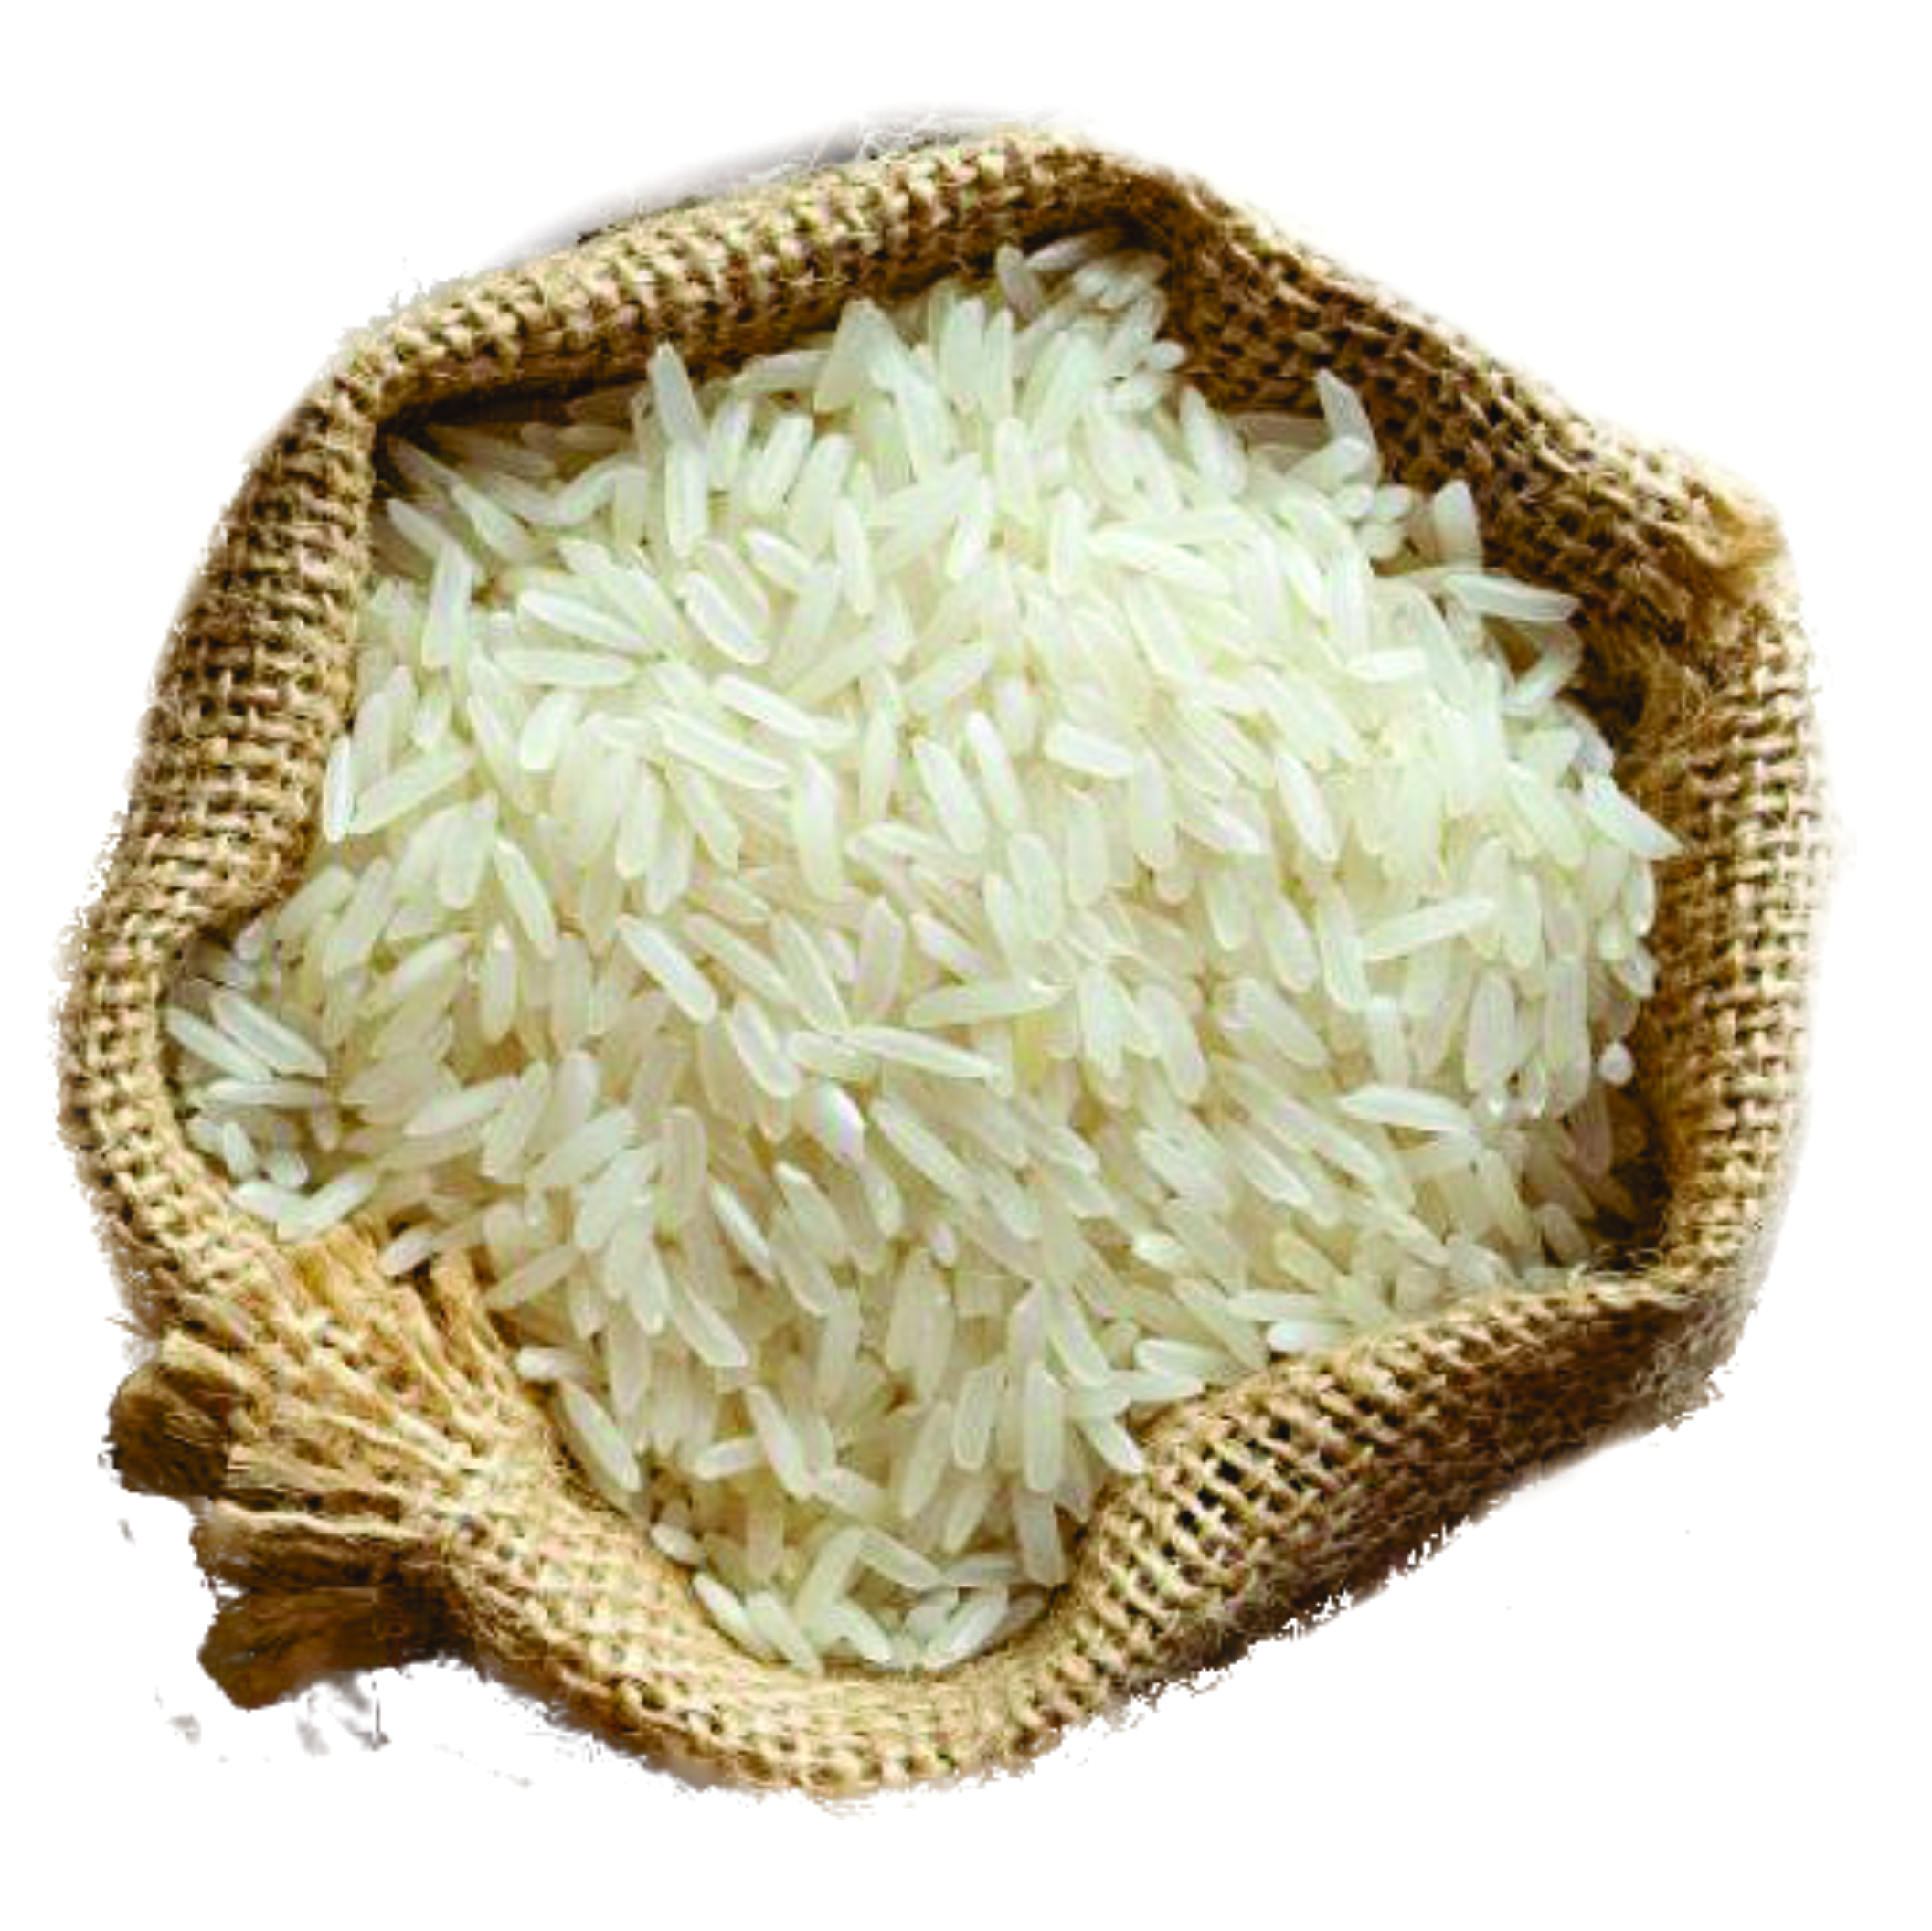 rice importers in south africa, rice importers in south